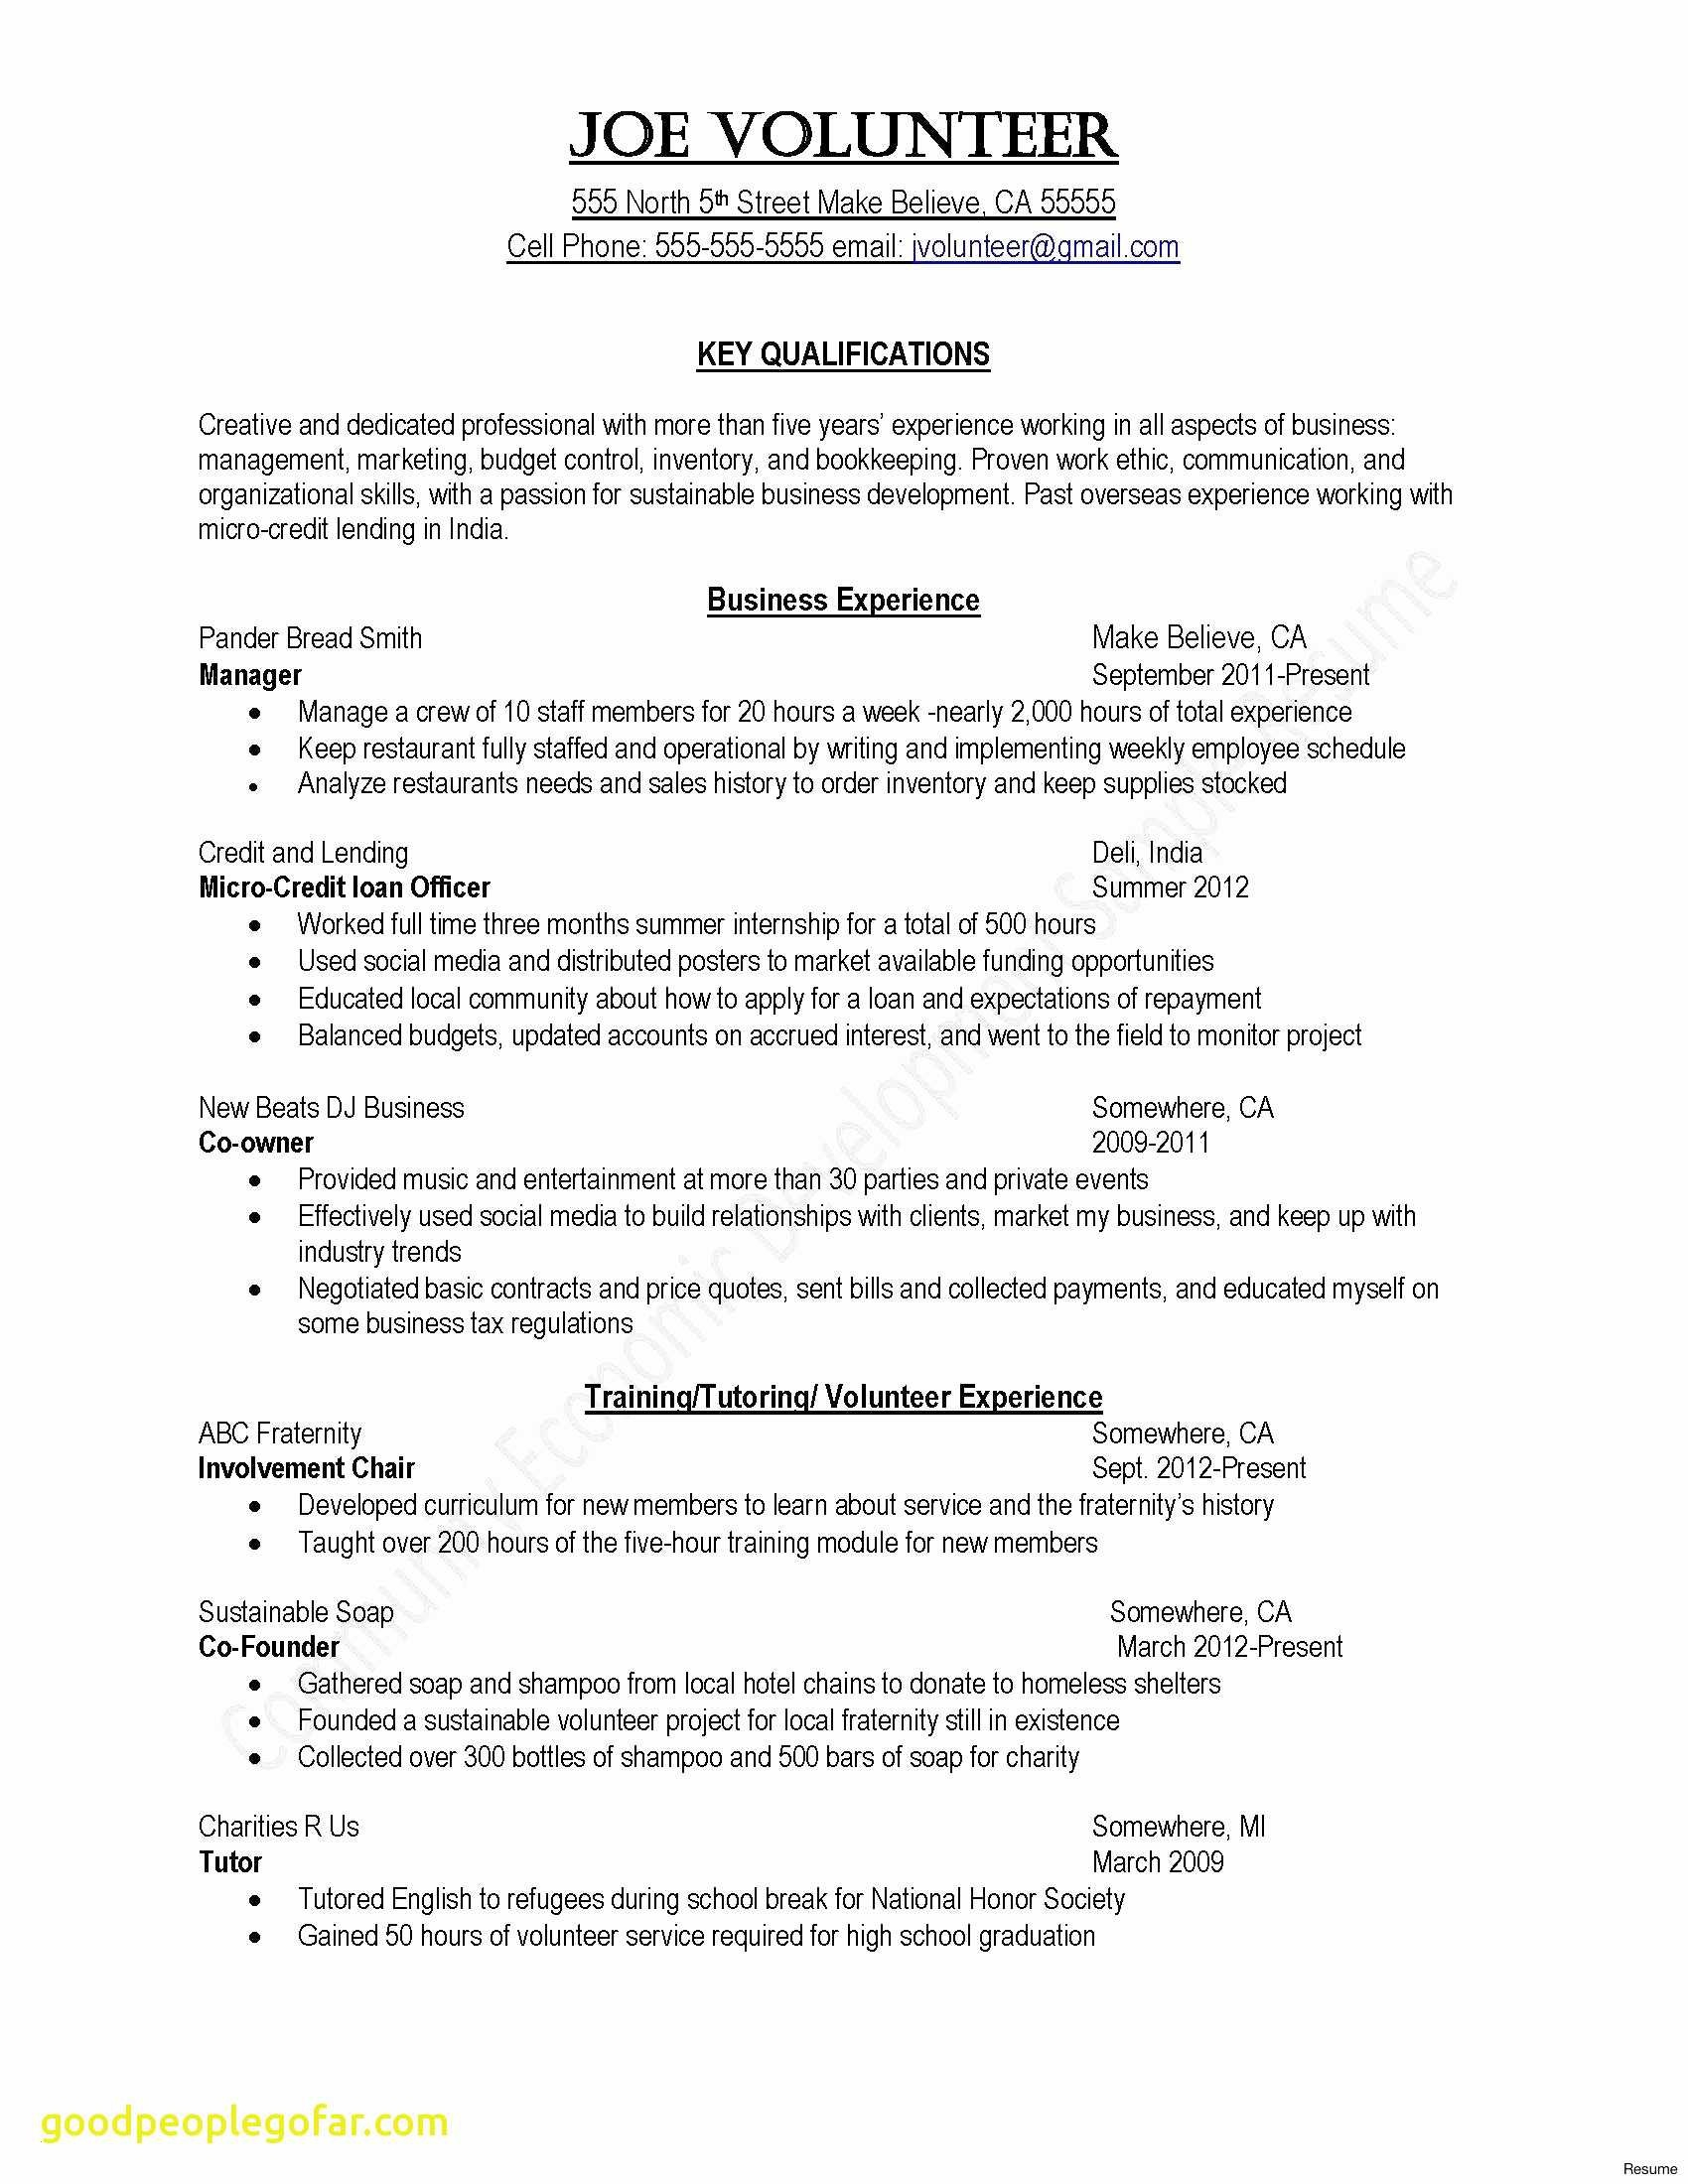 volunteer resume template example-Accounting Internship Resume Samples Unique Sample College Application Resume Lovely Painter Resume 0d 12-t